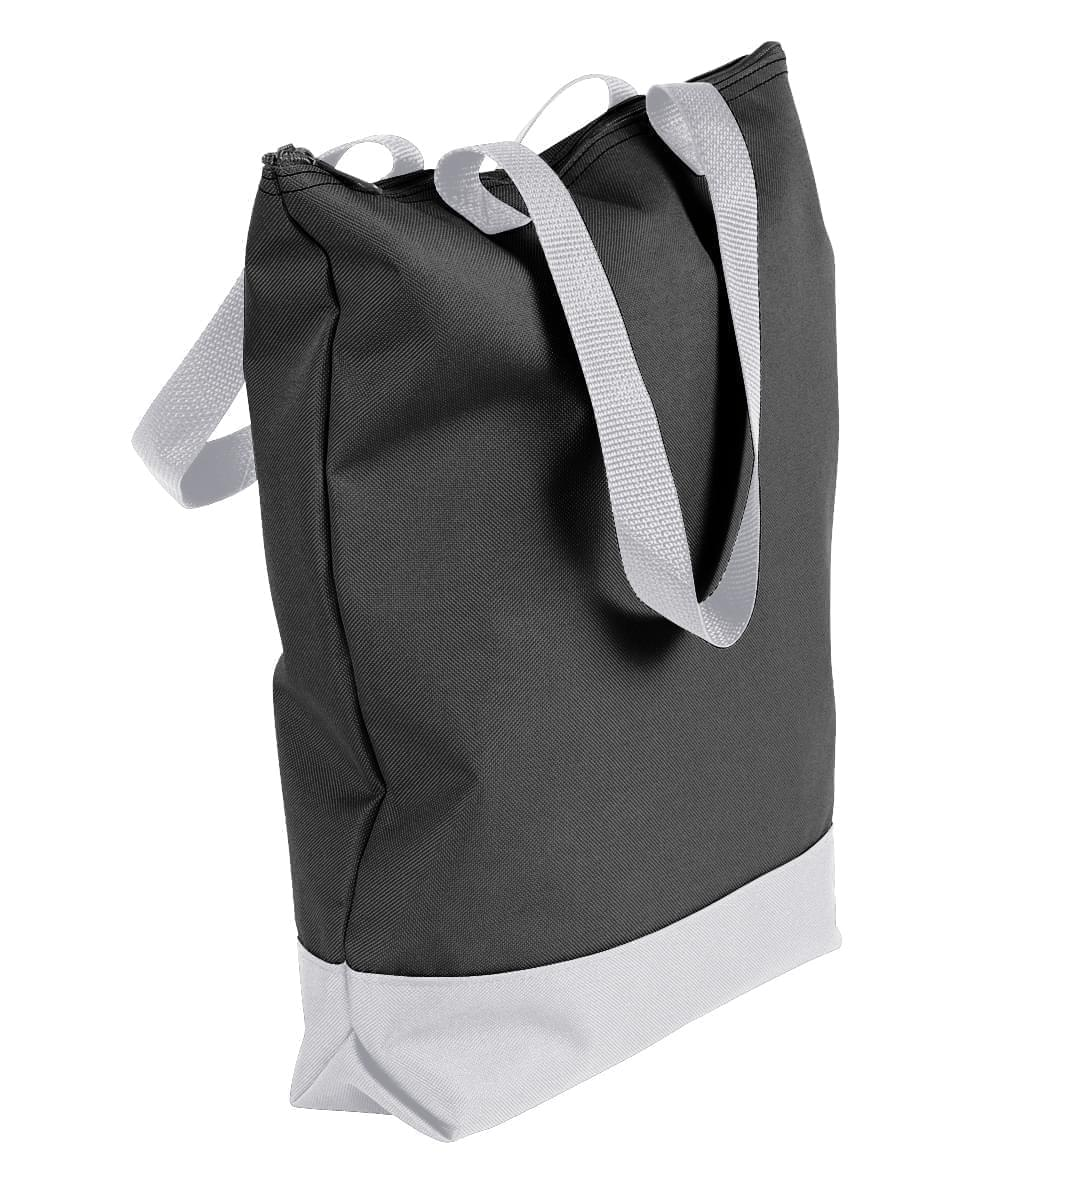 USA Made Canvas Portfolio Tote Bags, Black-White, 1AAMX1UAH4